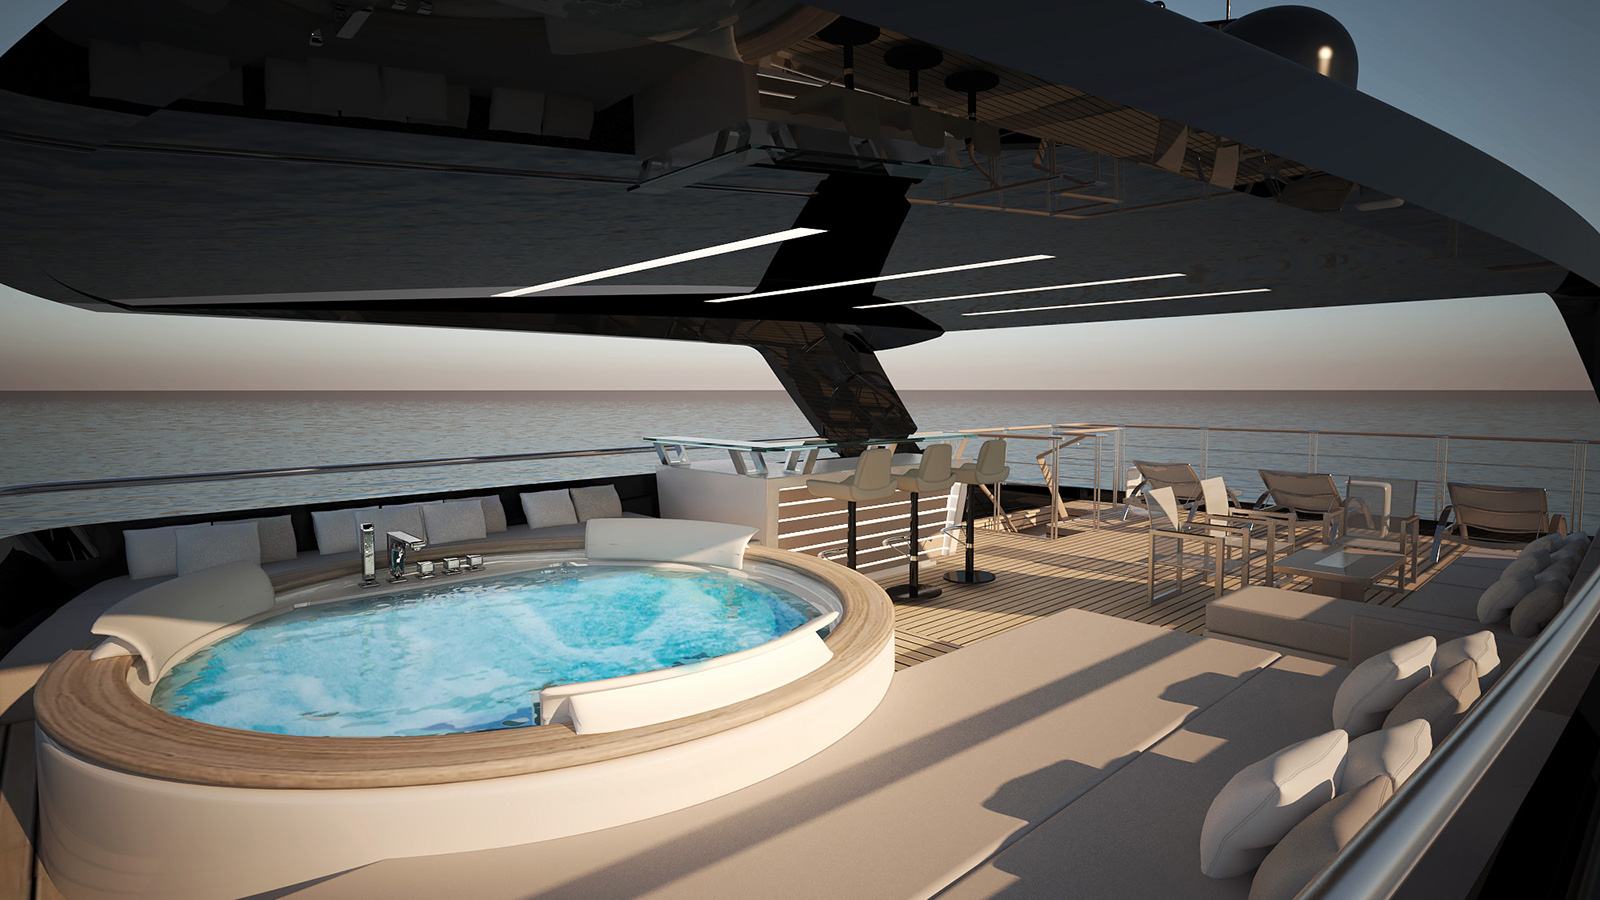 the-sundeck-of-the-filippetti-e32-yacht-concept